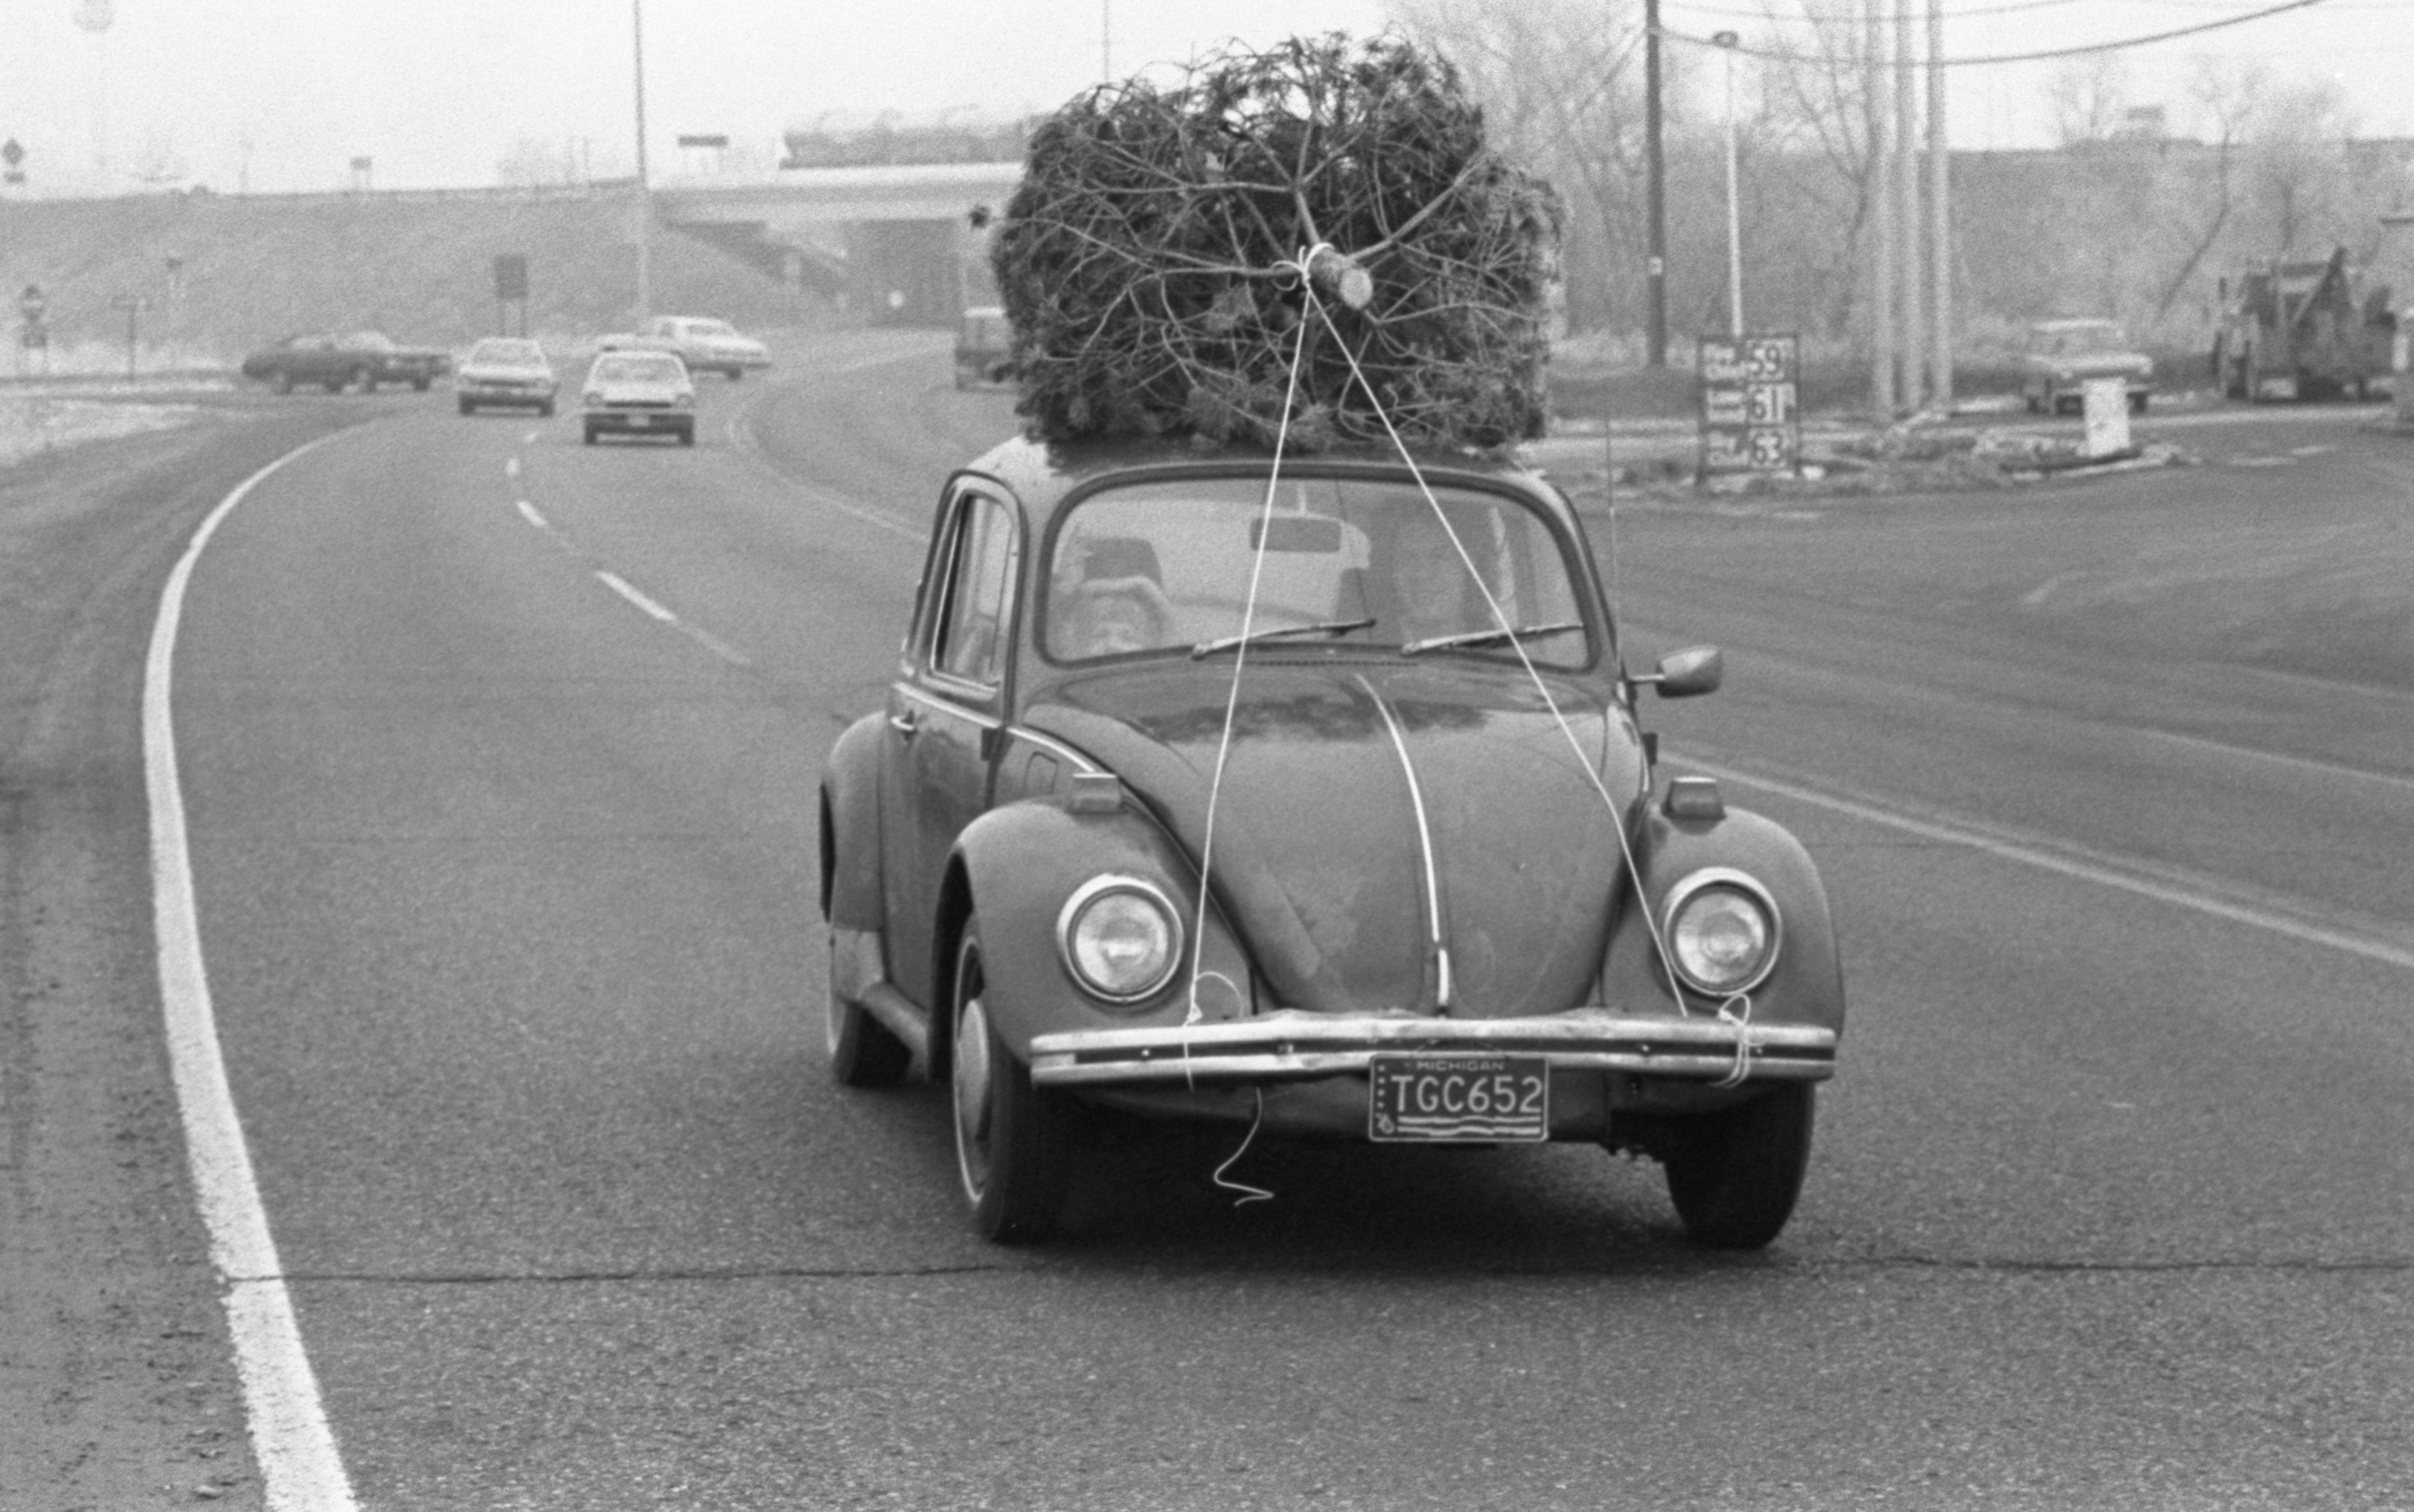 Christmas Tree Atop A Volkswagen, December 1976 image